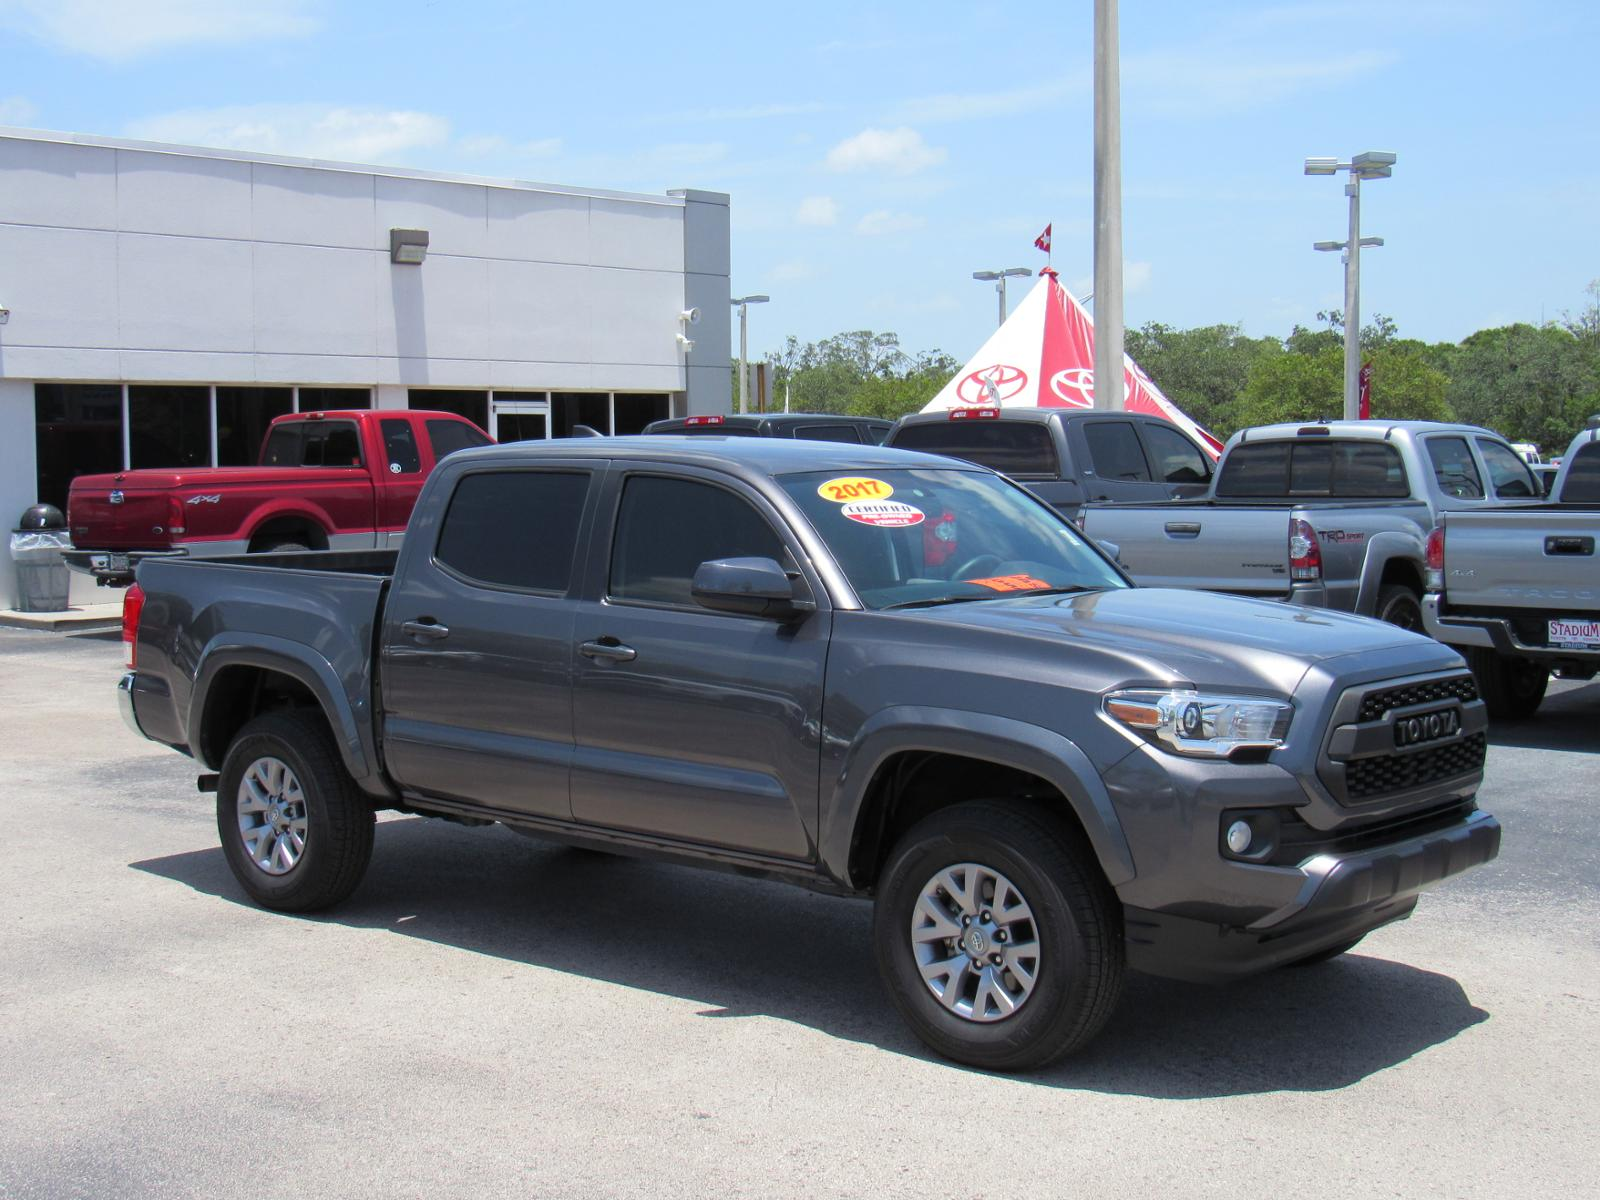 Certified Pre-Owned 2017 Toyota Tacoma SR5 Double Cab 5' Bed V6 4x2 AT (Natl)